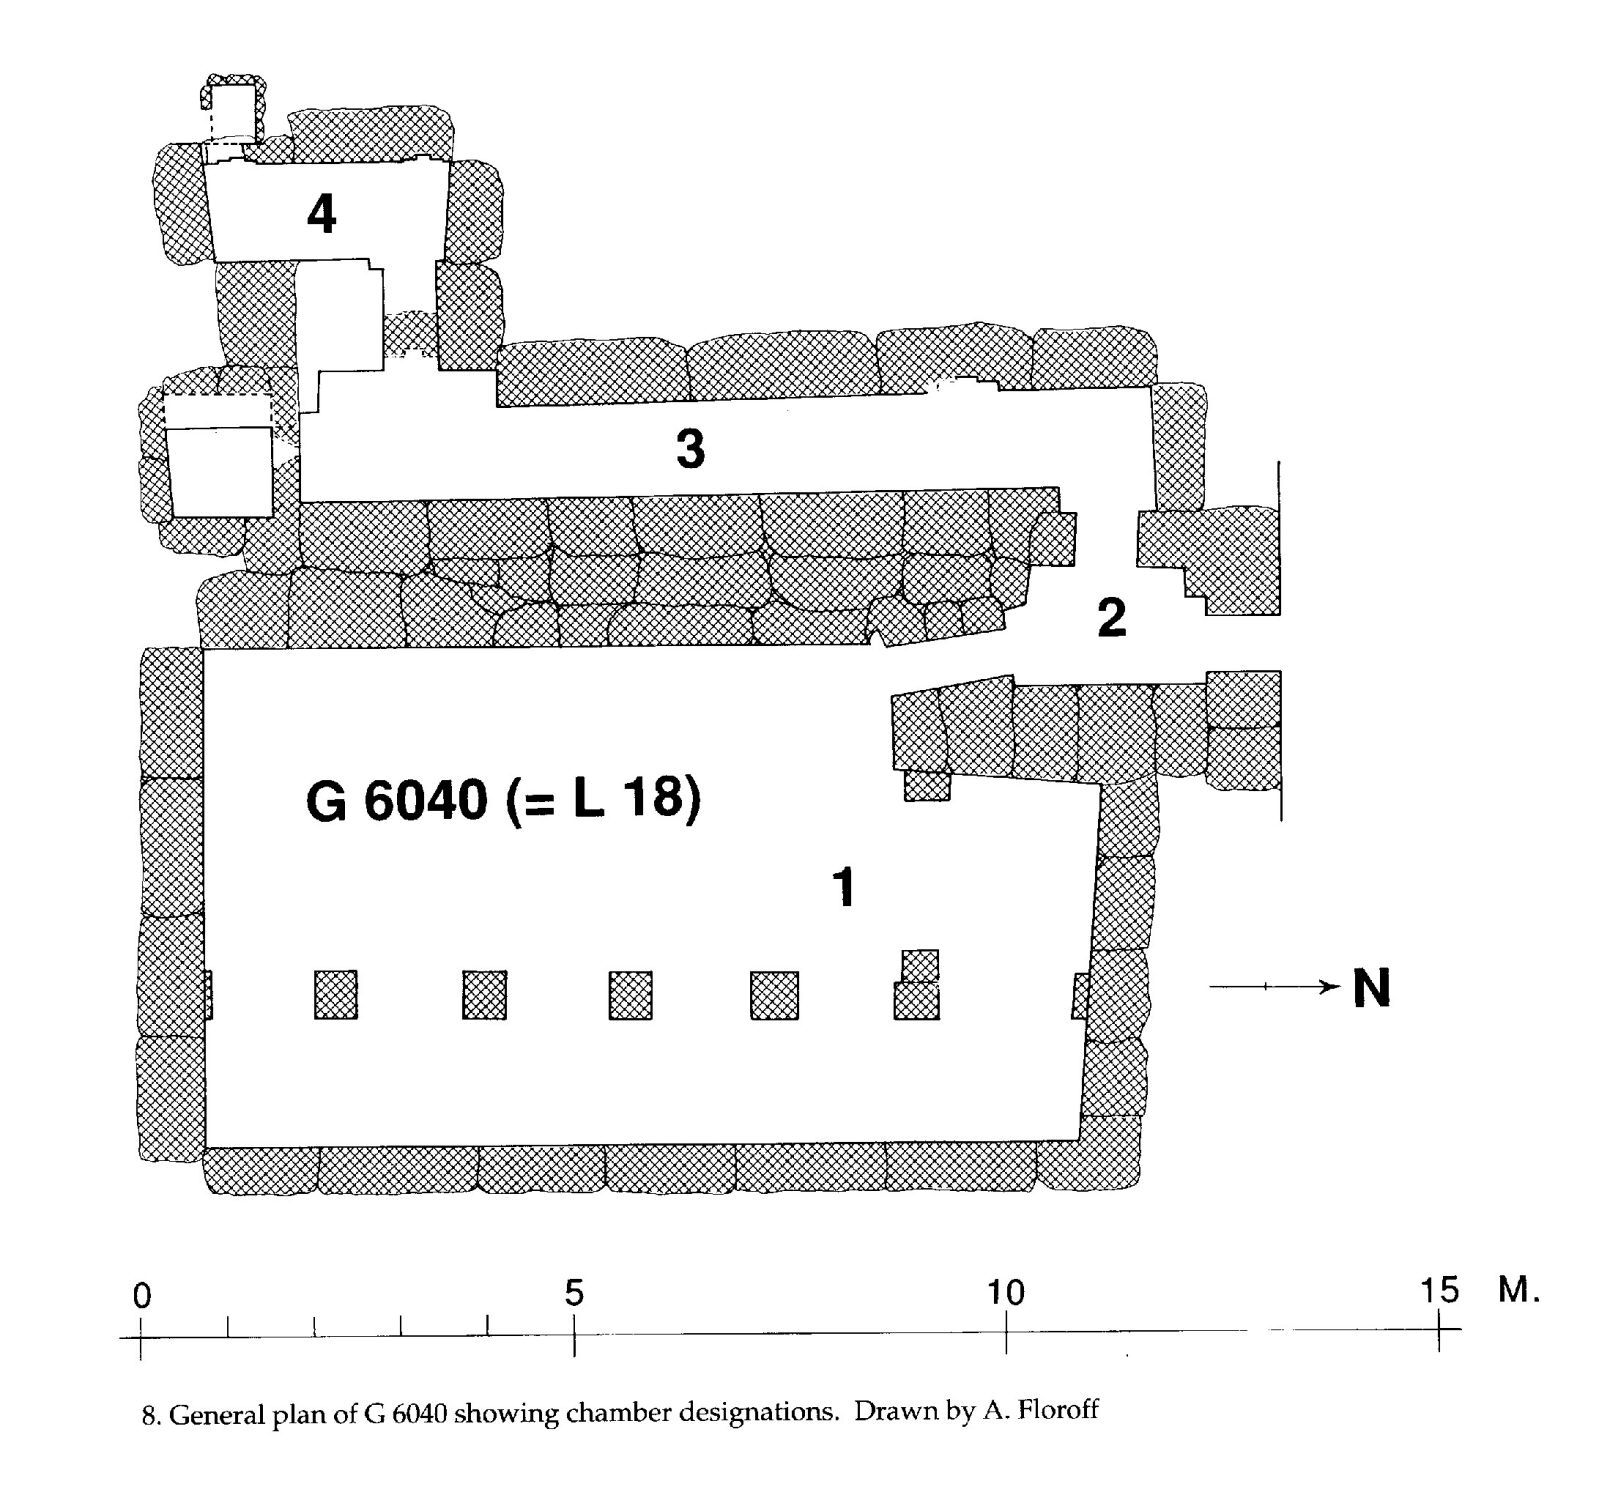 Maps and plans: G 6040, Plan, with chamber designations